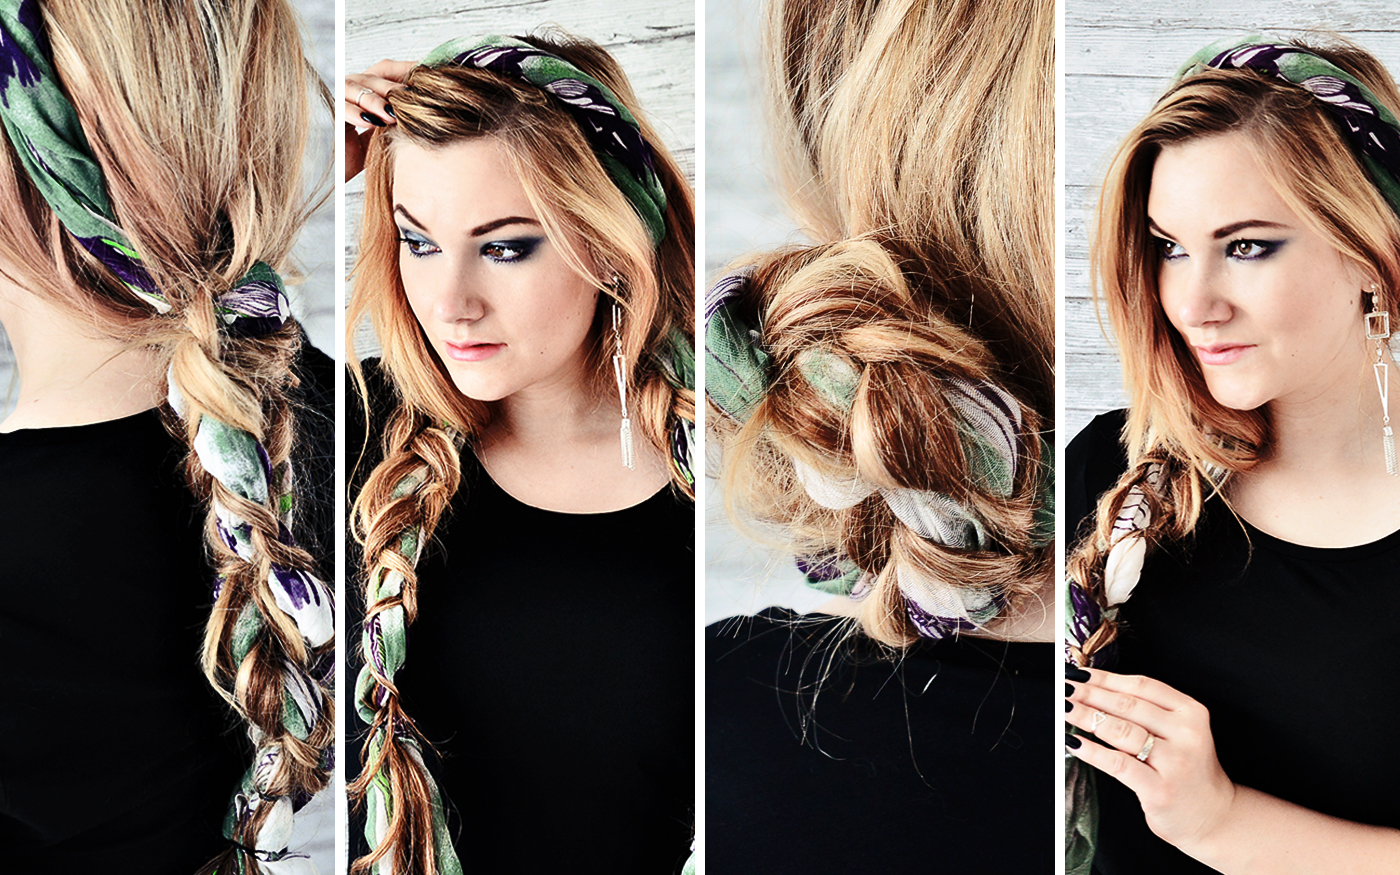 Enkla frisyrer med en sjal - Simple hairstyles with a scarf